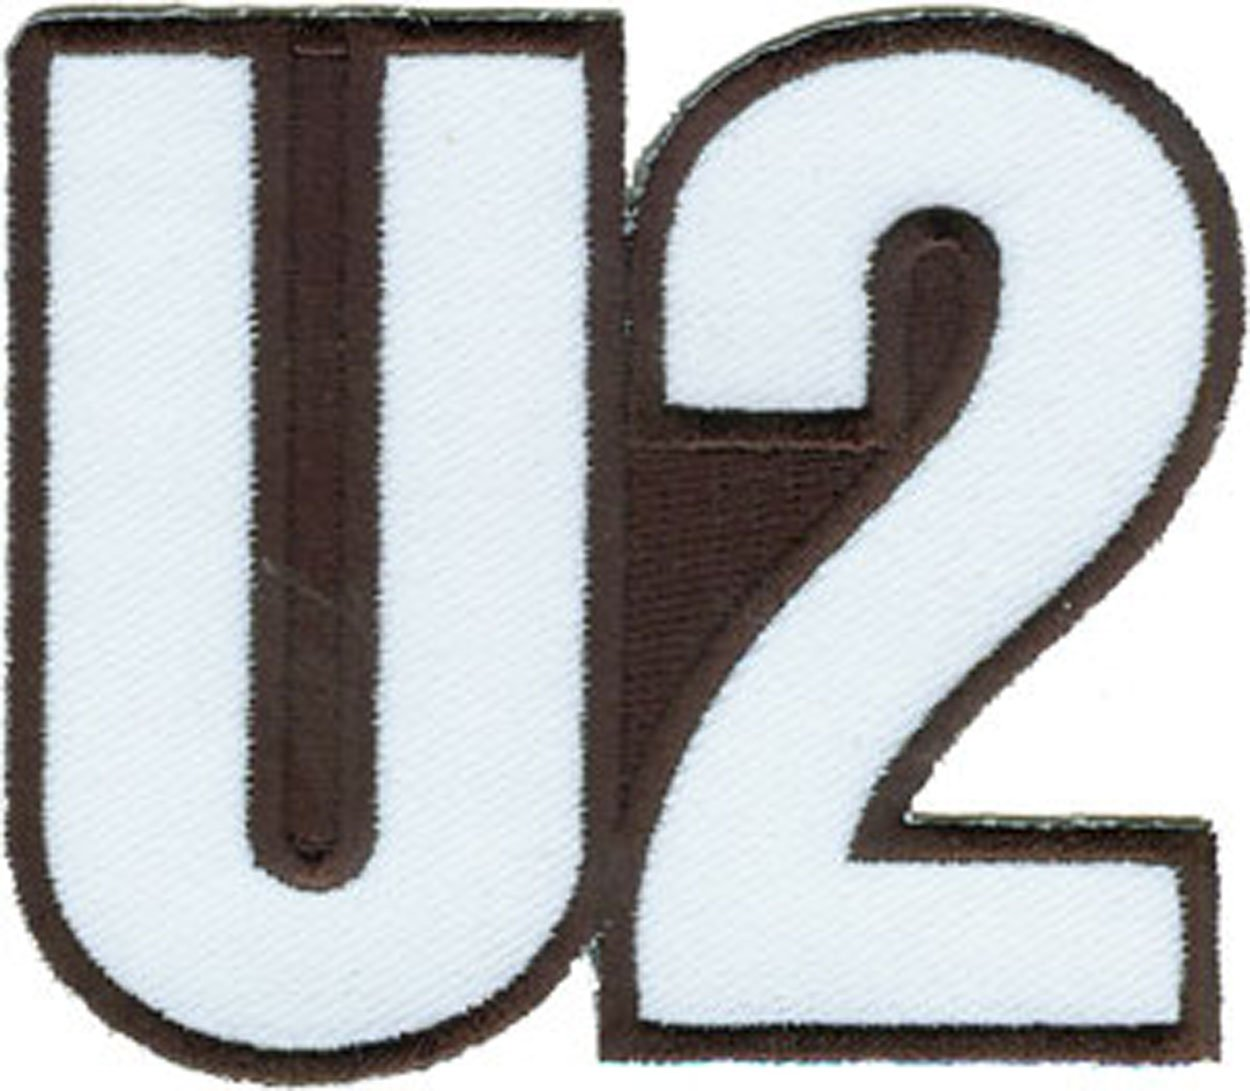 U2 Logo, Officially Licensed Original Artwork, High Quality Iron-On / Sew-On, 3' x 2.2' Embroidered PATCH Flicken 3 x 2.2 Embroidered PATCH Flicken Officially Licensed & Trademarked Products P-3264